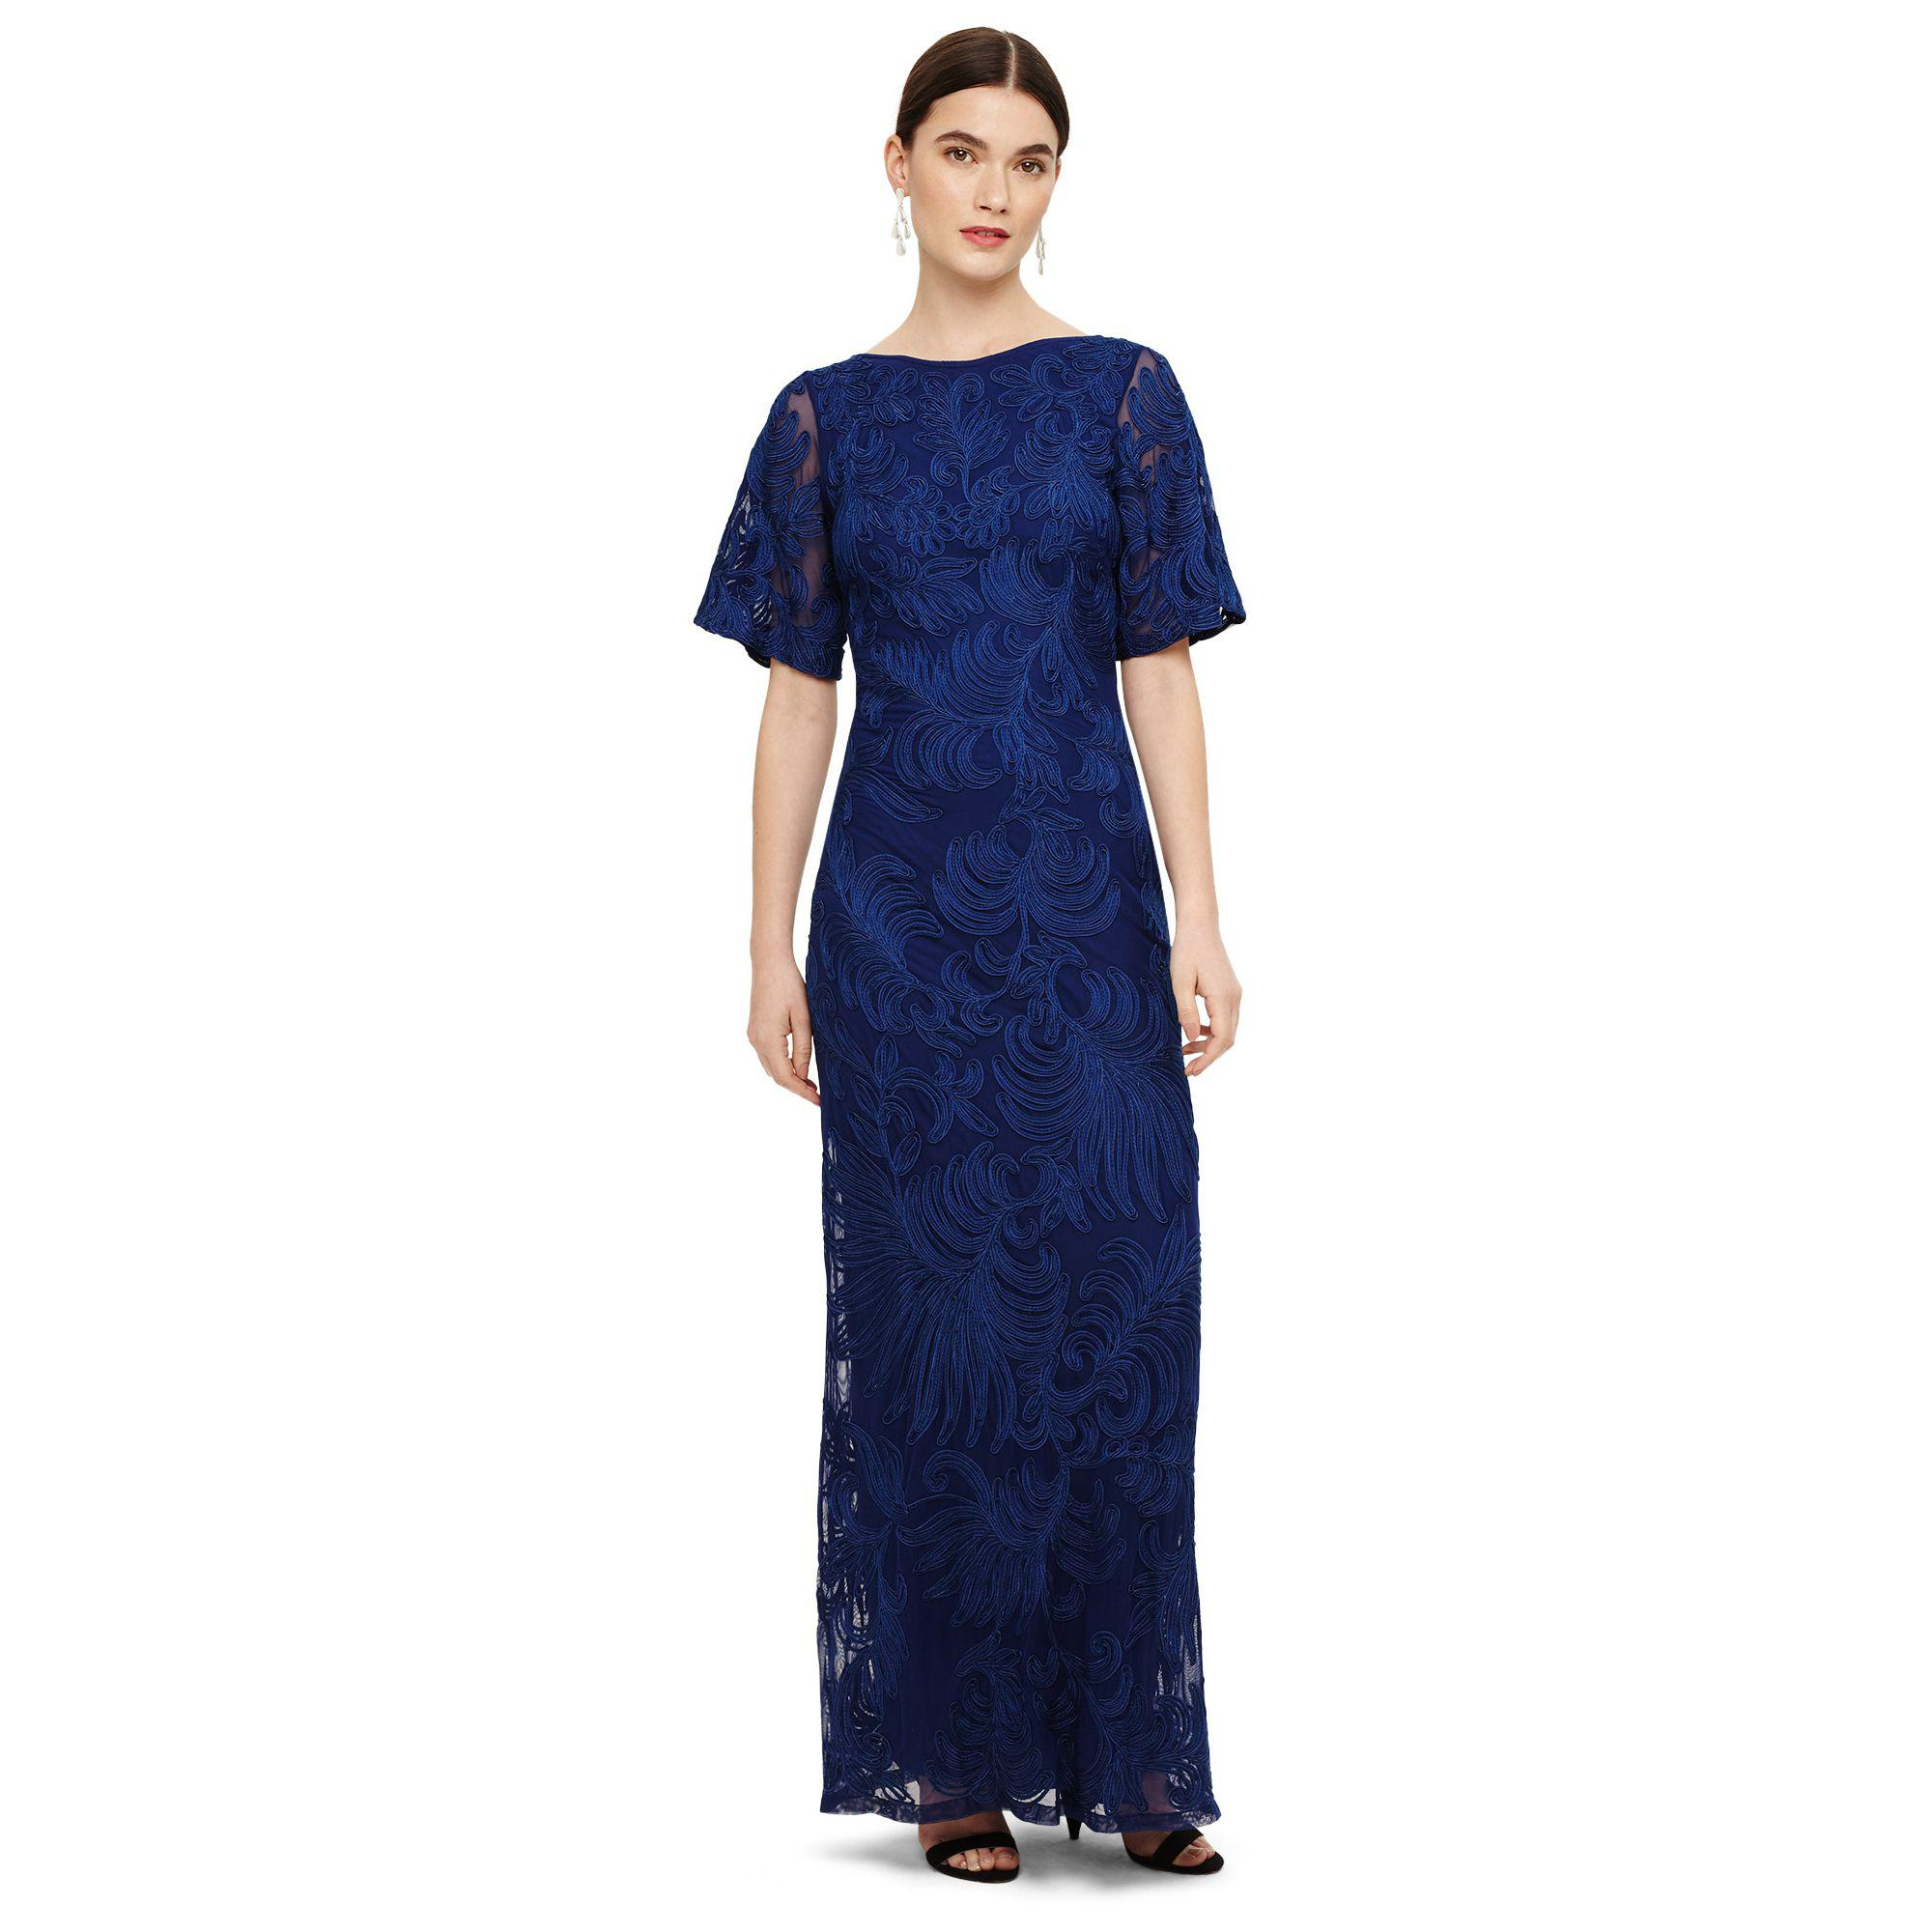 Phase Eight Blue Cecily Tapework Dress in Blue - Lyst